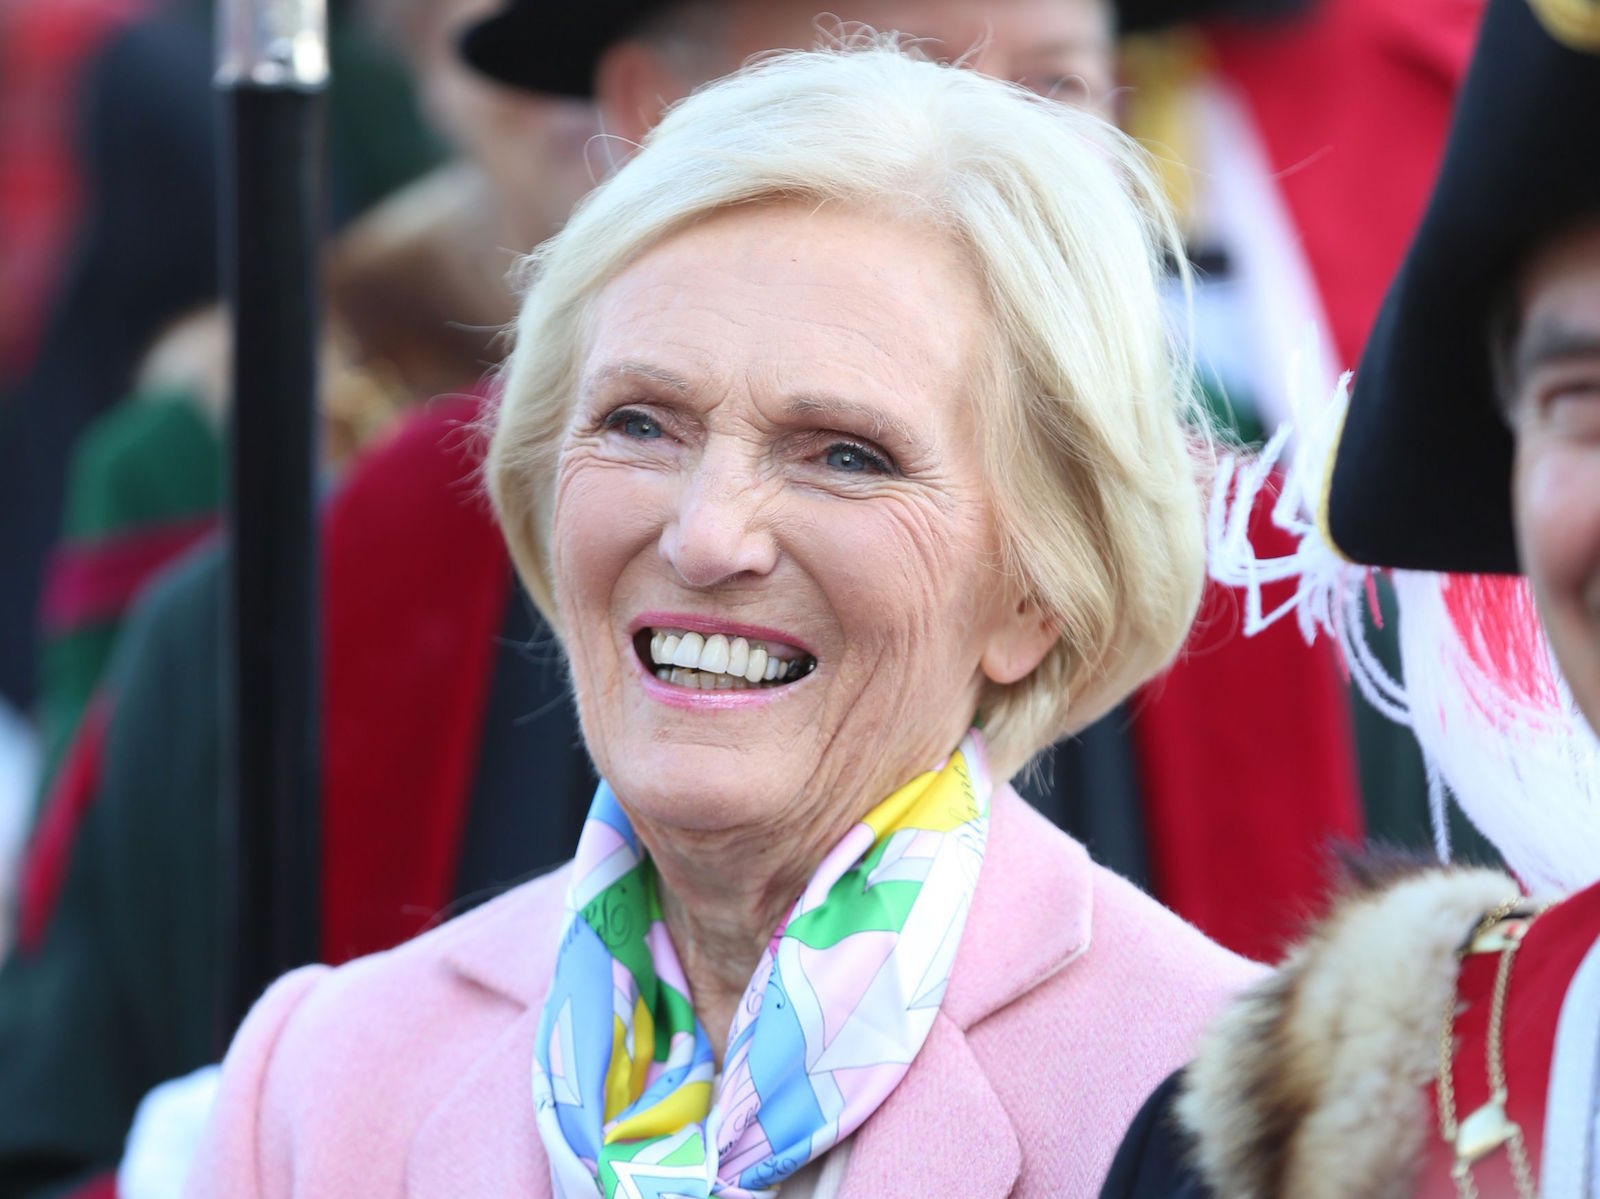 mary-berry-controversial-FT-BLOG0518.jpg